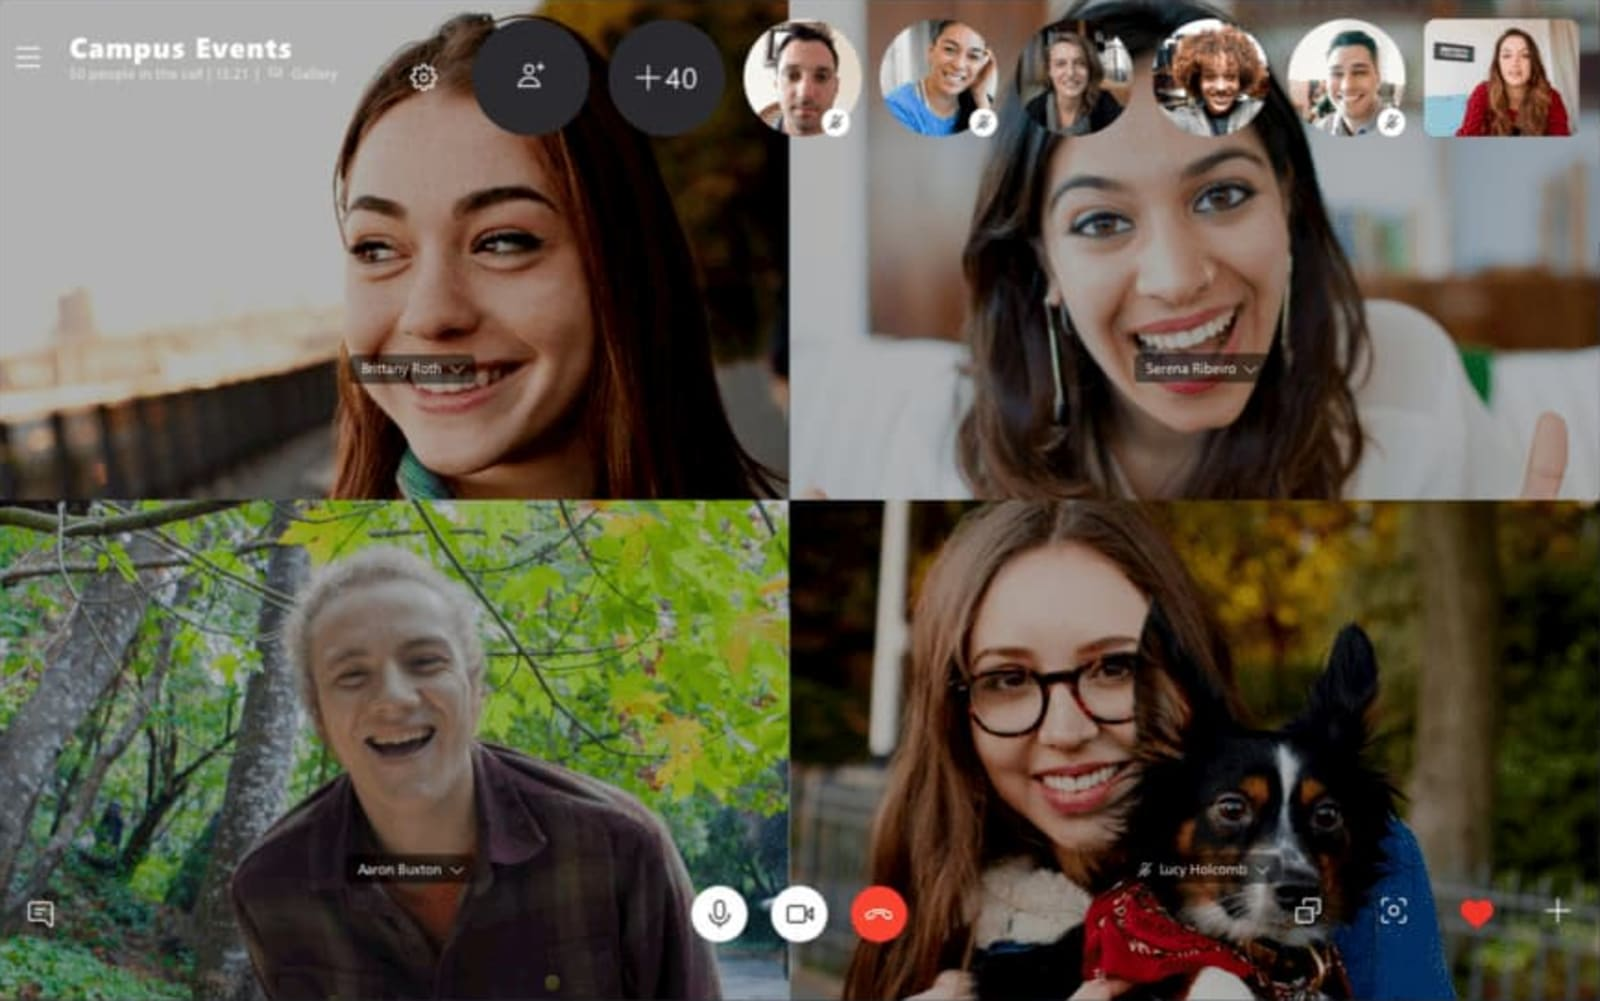 Skype doubles group call limit to 50 people